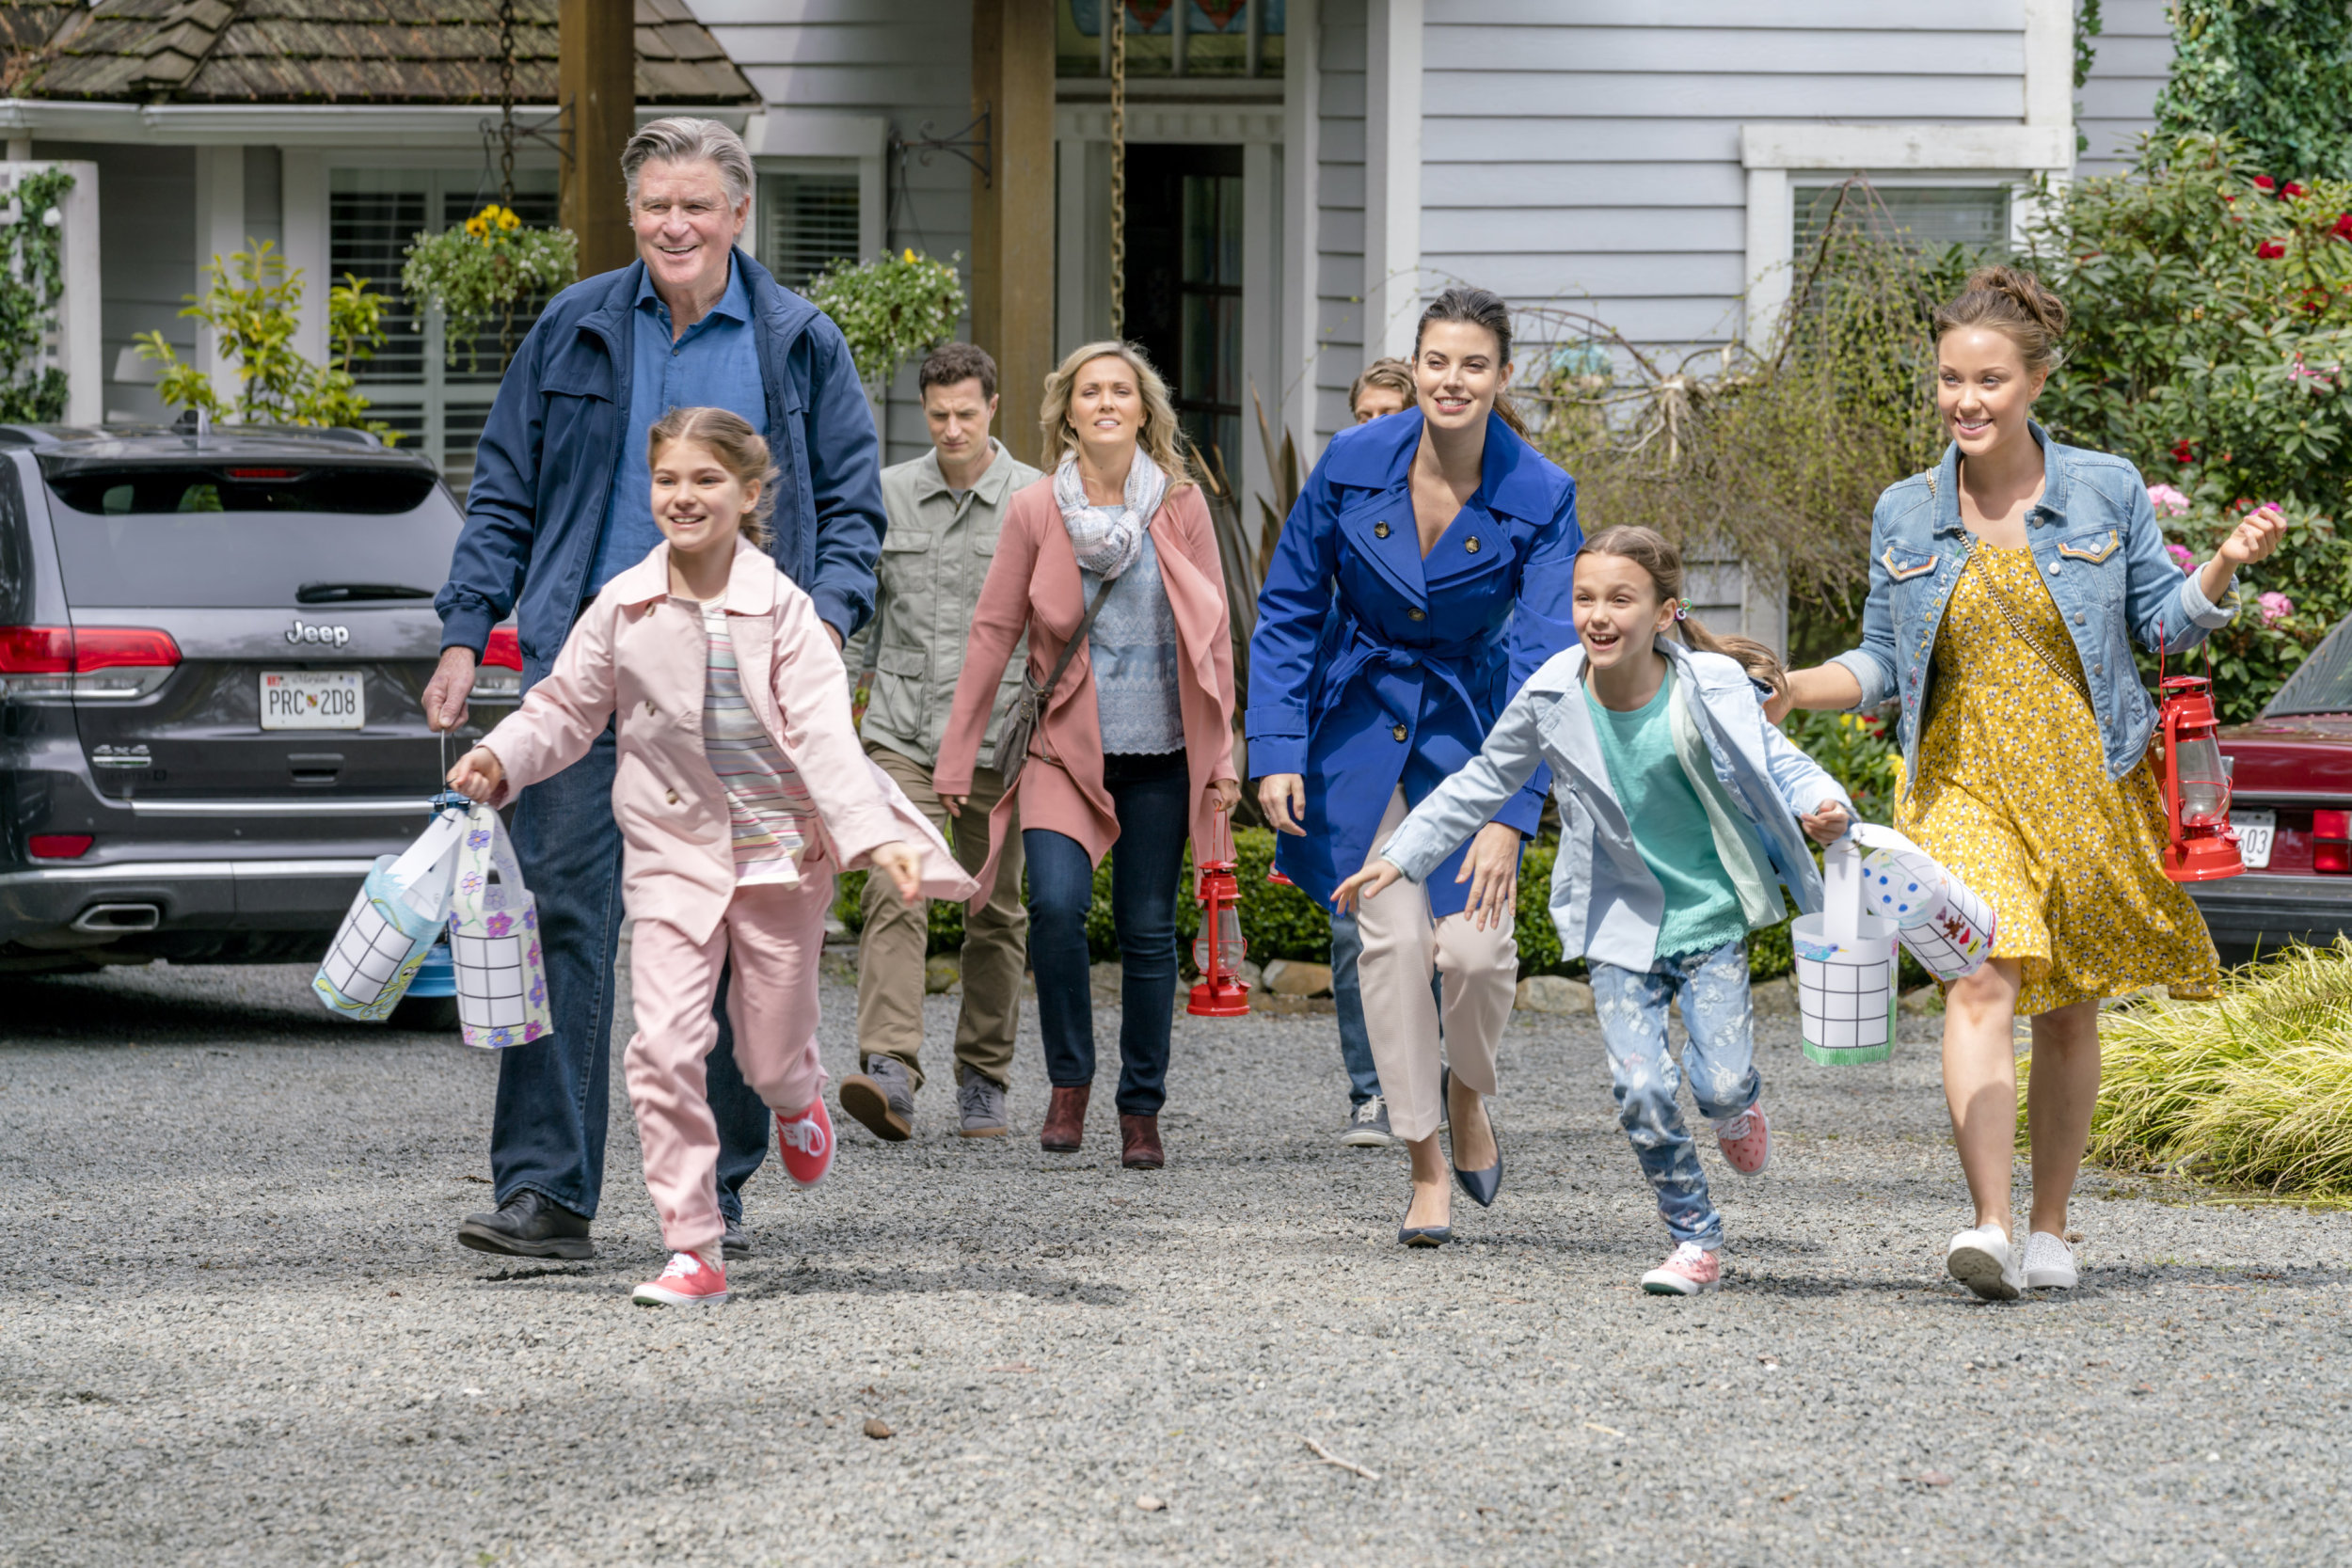 Are you a fan of Chesapeake Shores?